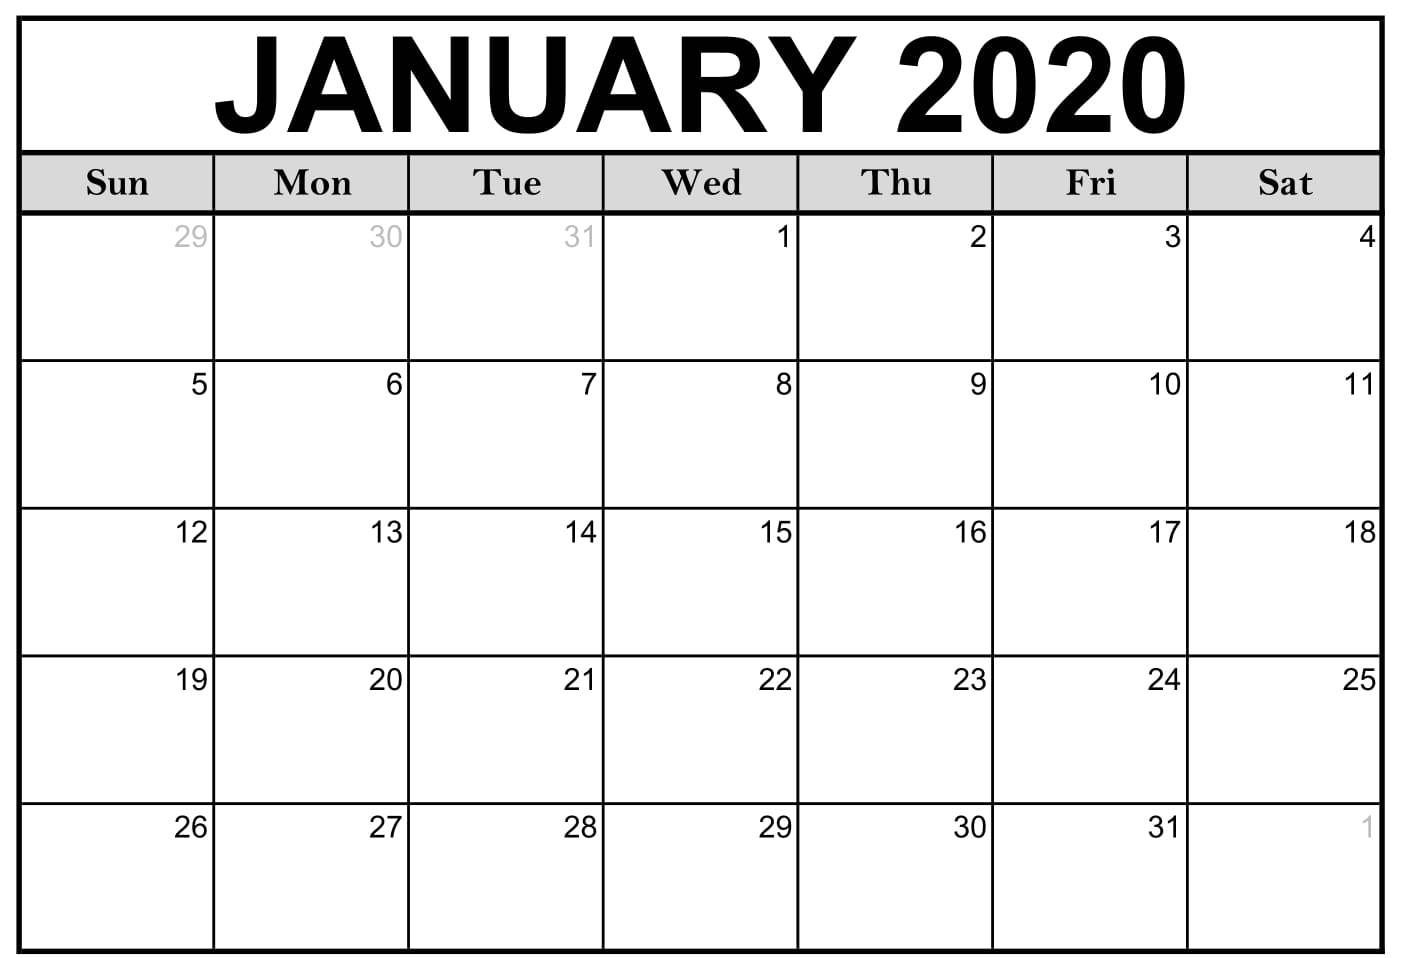 Free January 2020 Printable Calendar Word Pdf With Holidays